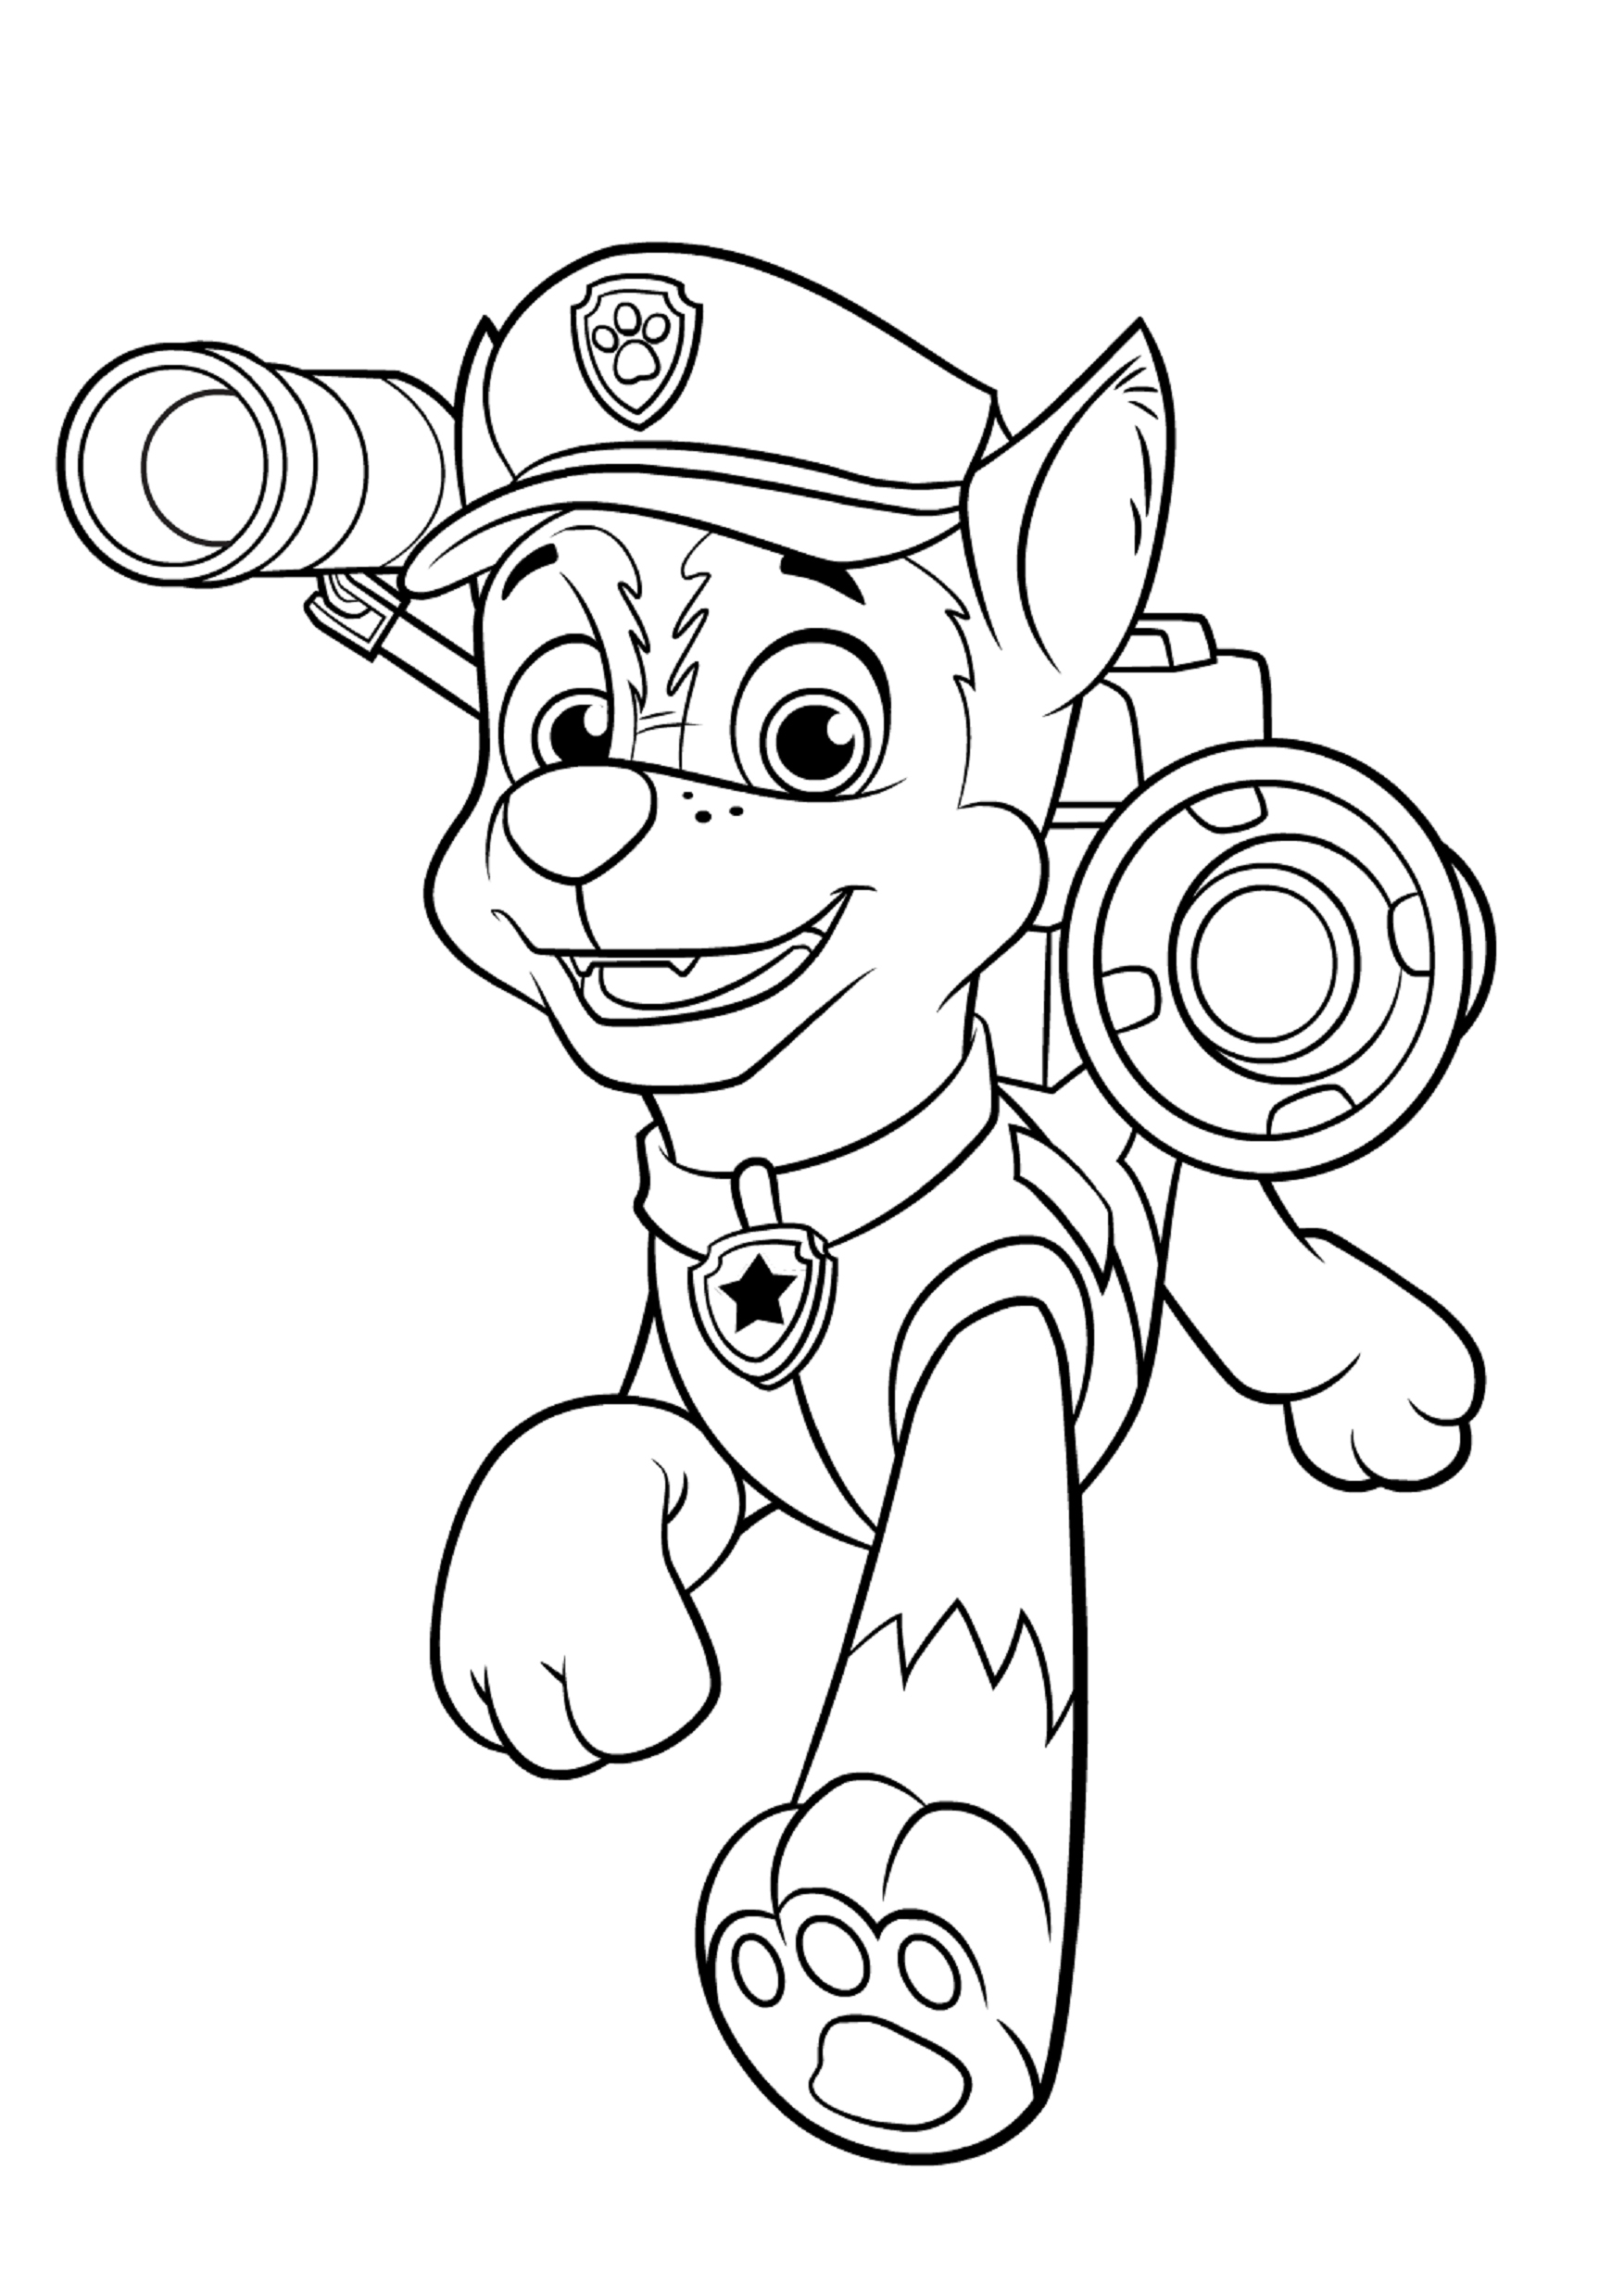 Chase Paw Patrol coloring pages to download and print for free